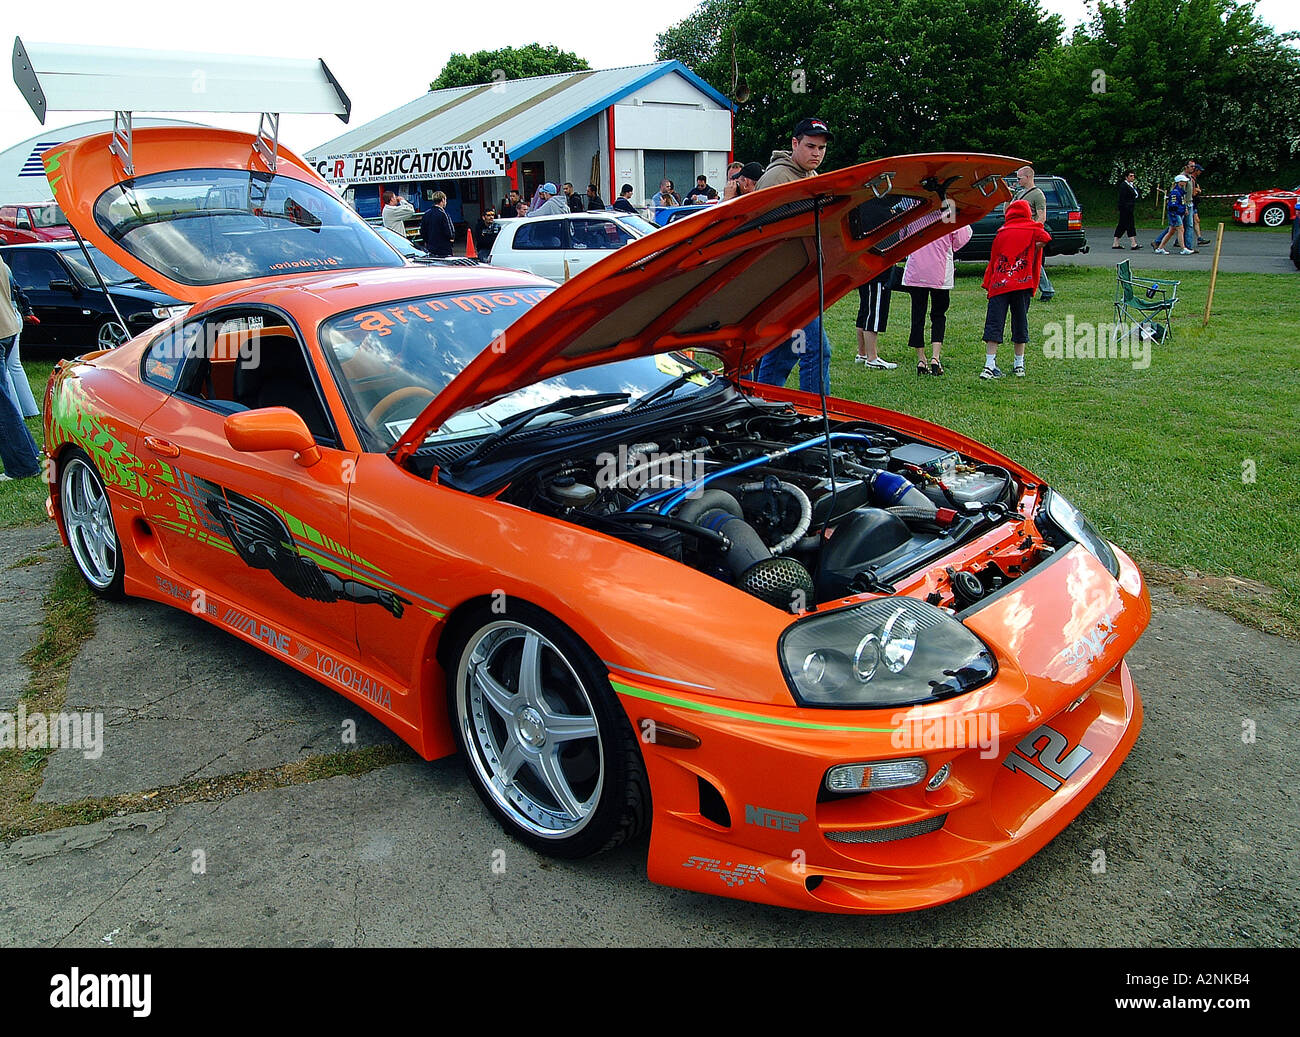 Fast Furious Street Racer Performance Car Stock Photo Alamy